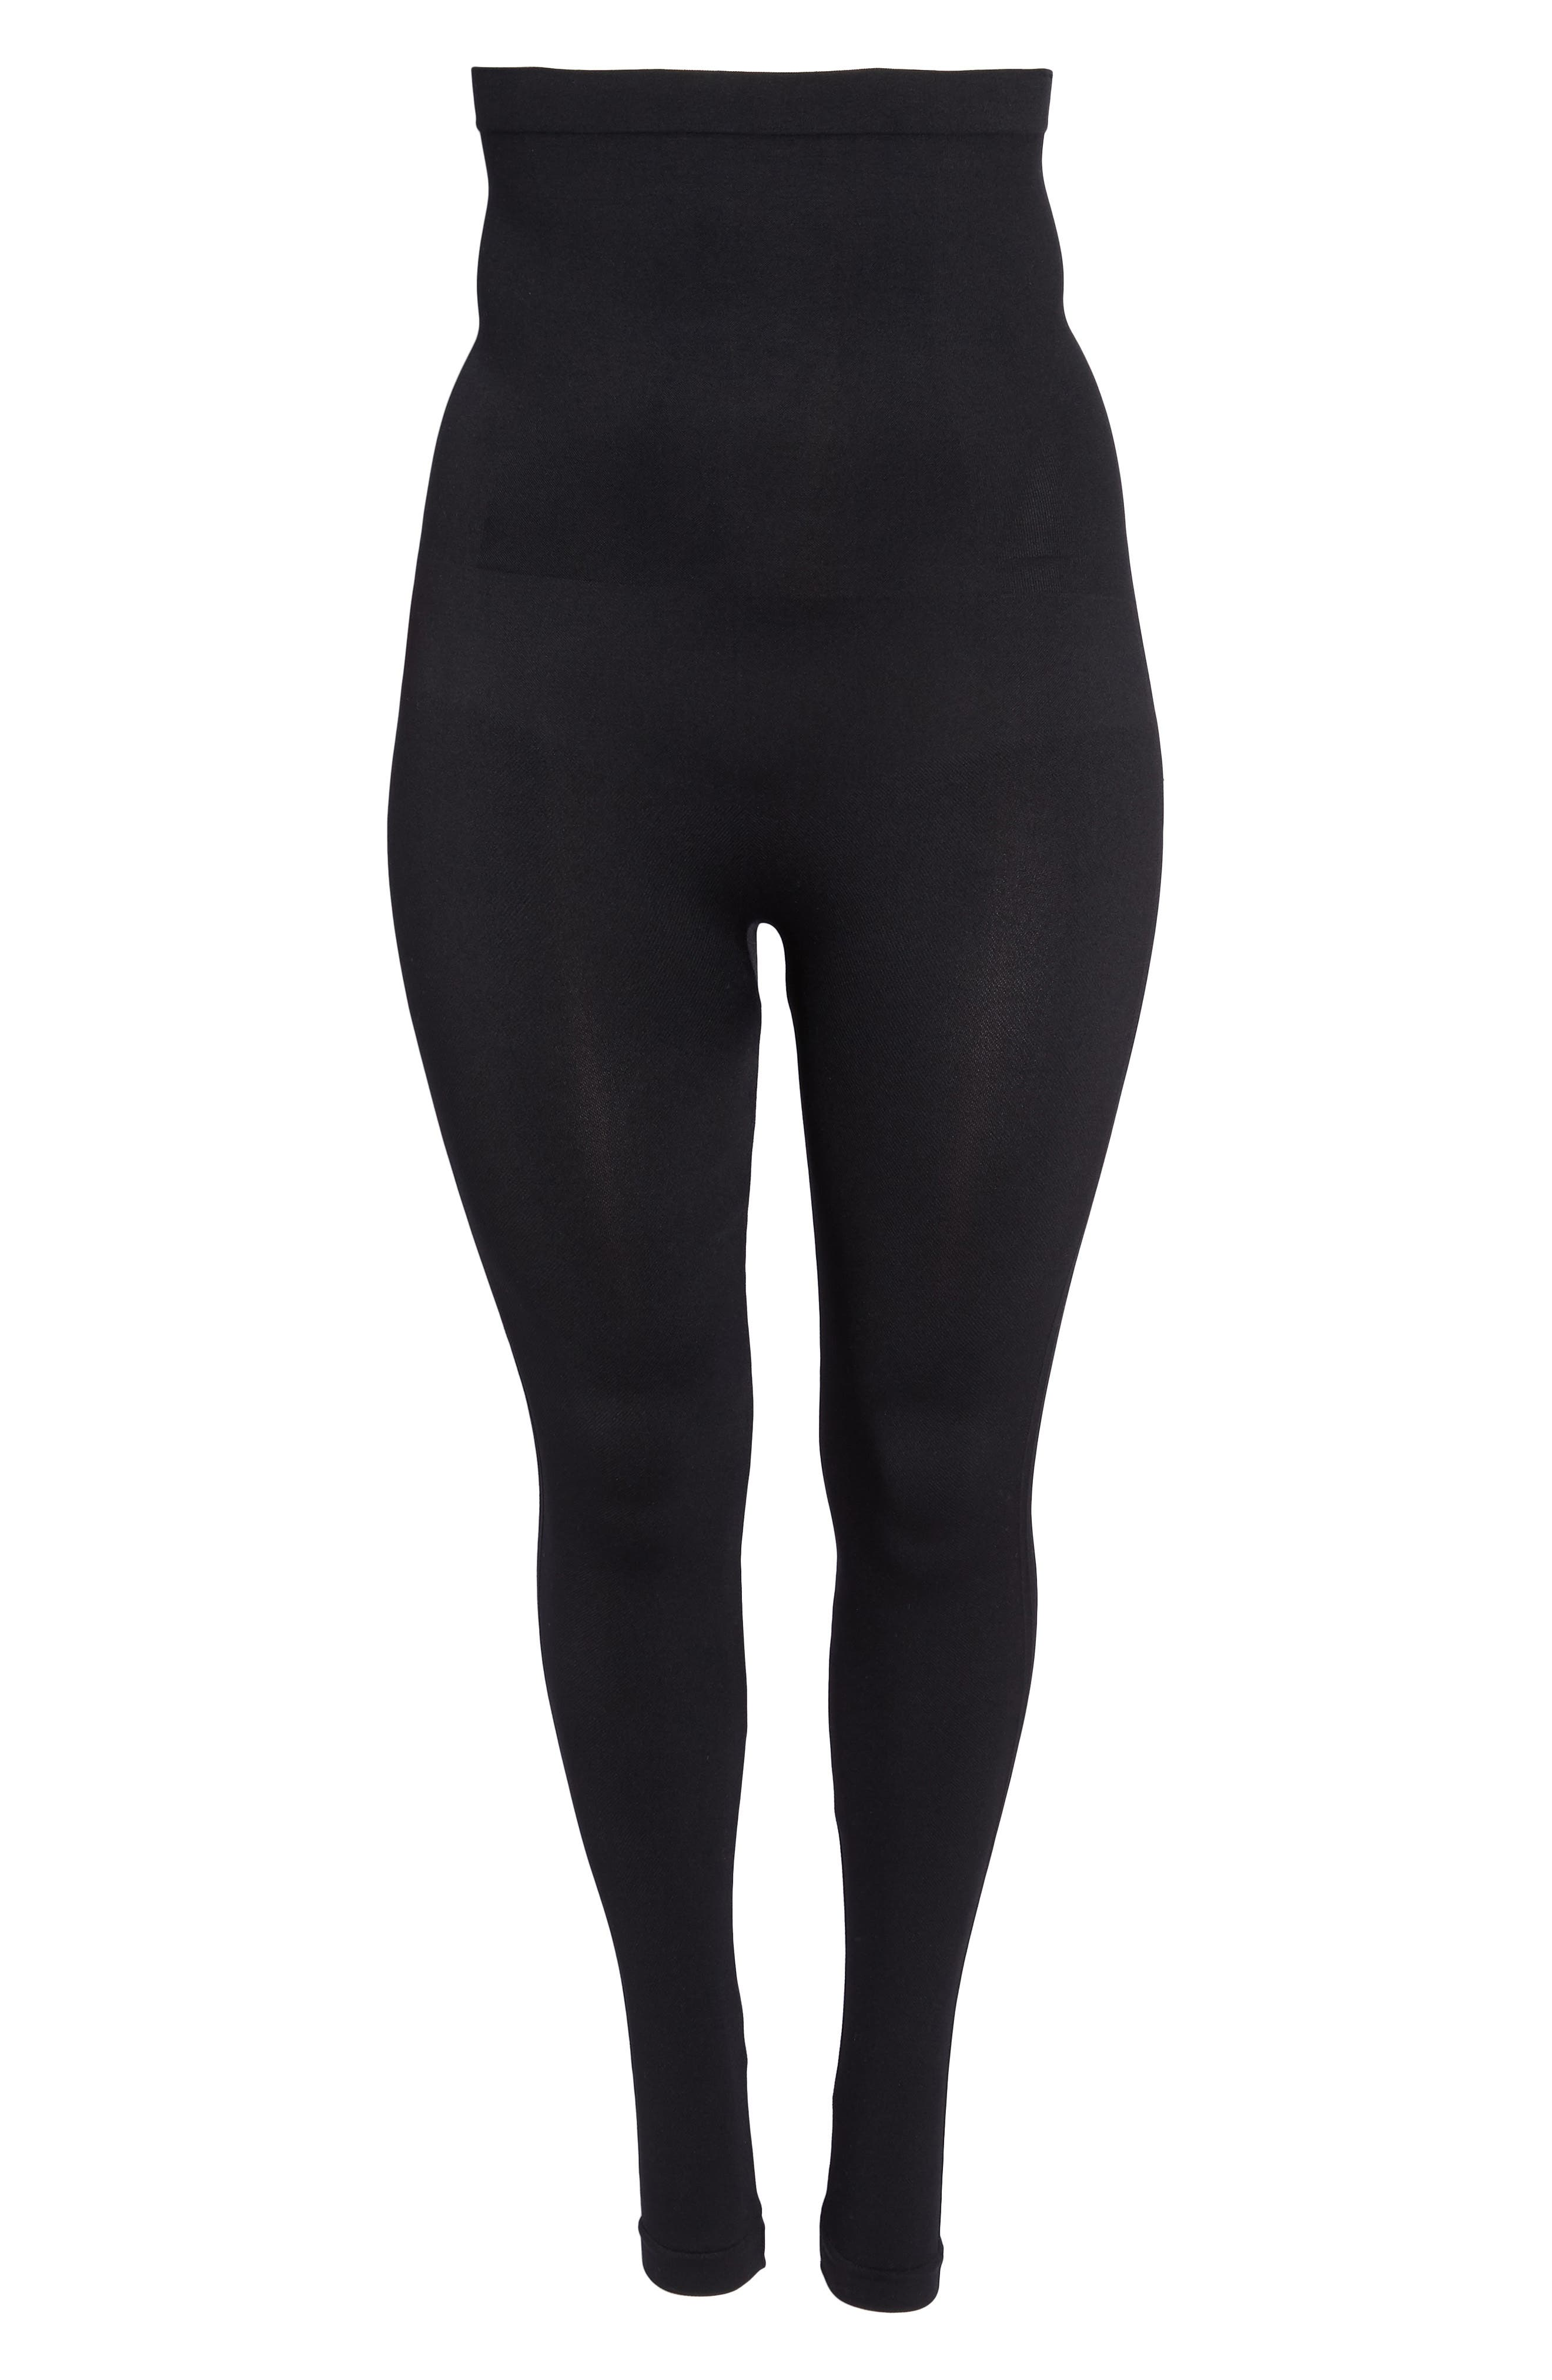 Look At Me Now Seamless Leggings,                             Alternate thumbnail 6, color,                             VERY BLACK